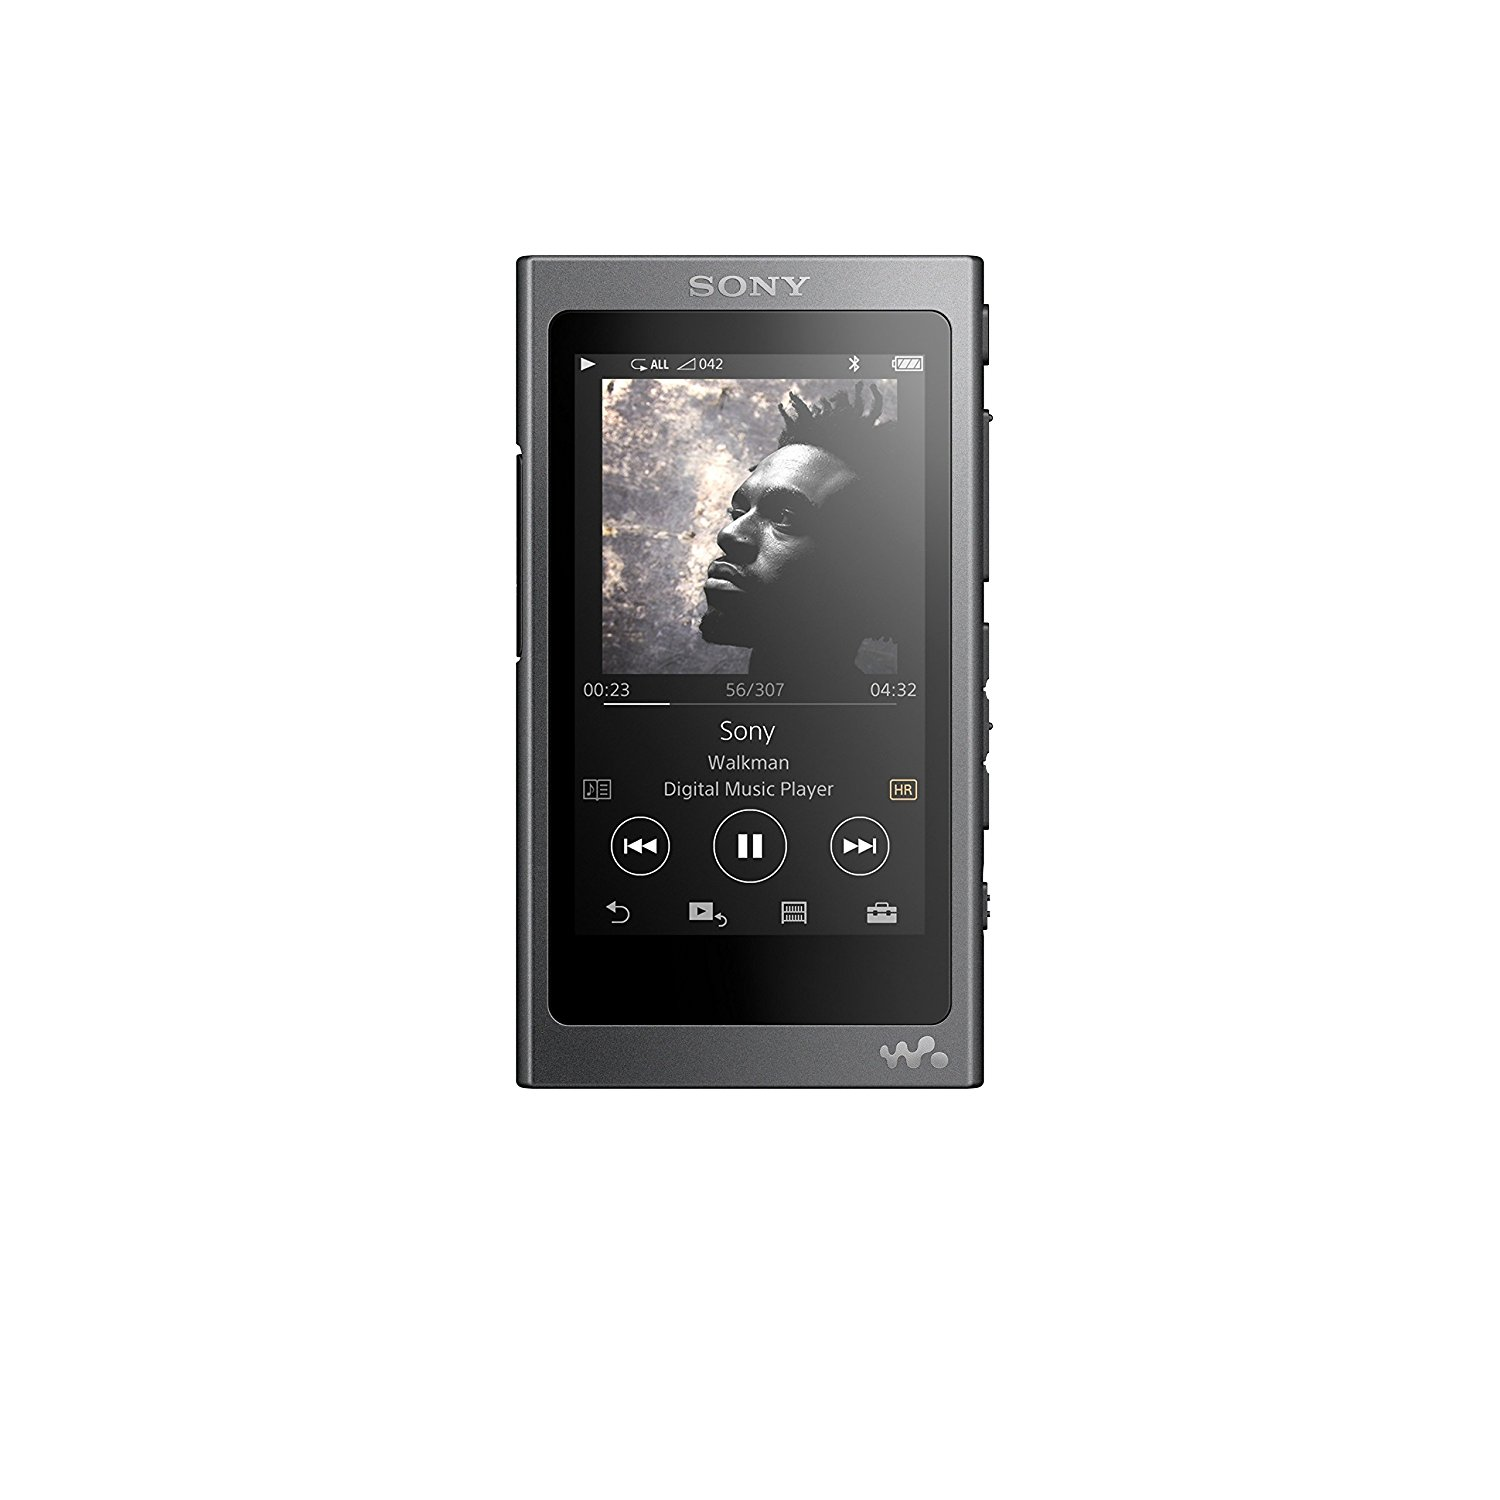 Sony NW-A35 16GB Walkman – Digital Music Player with Hi-Res Audio